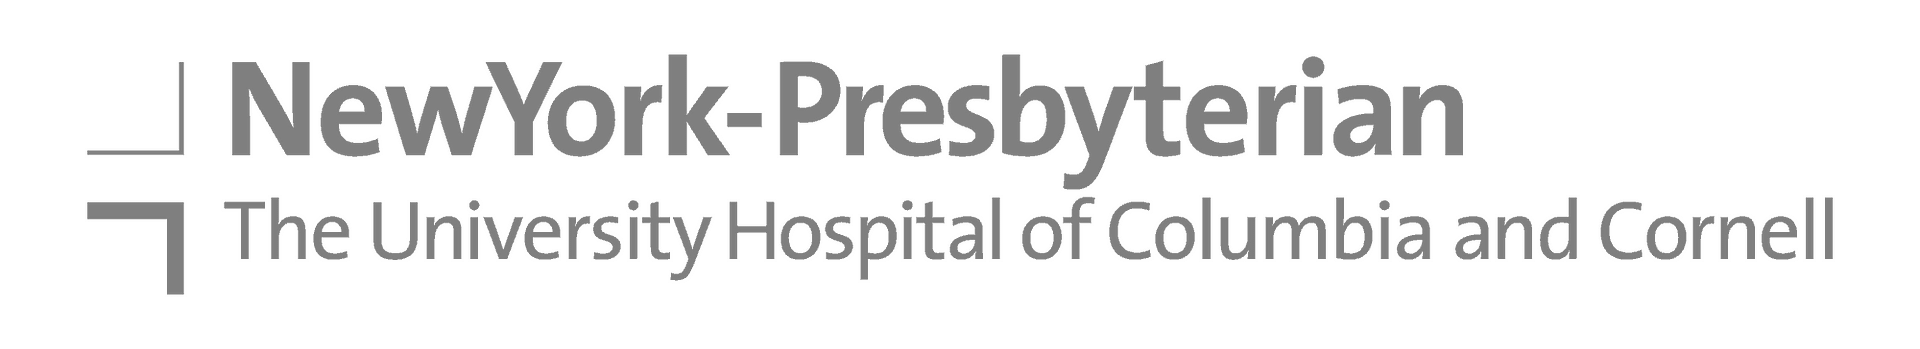 New_York-Presbyterian_Hospital_logo